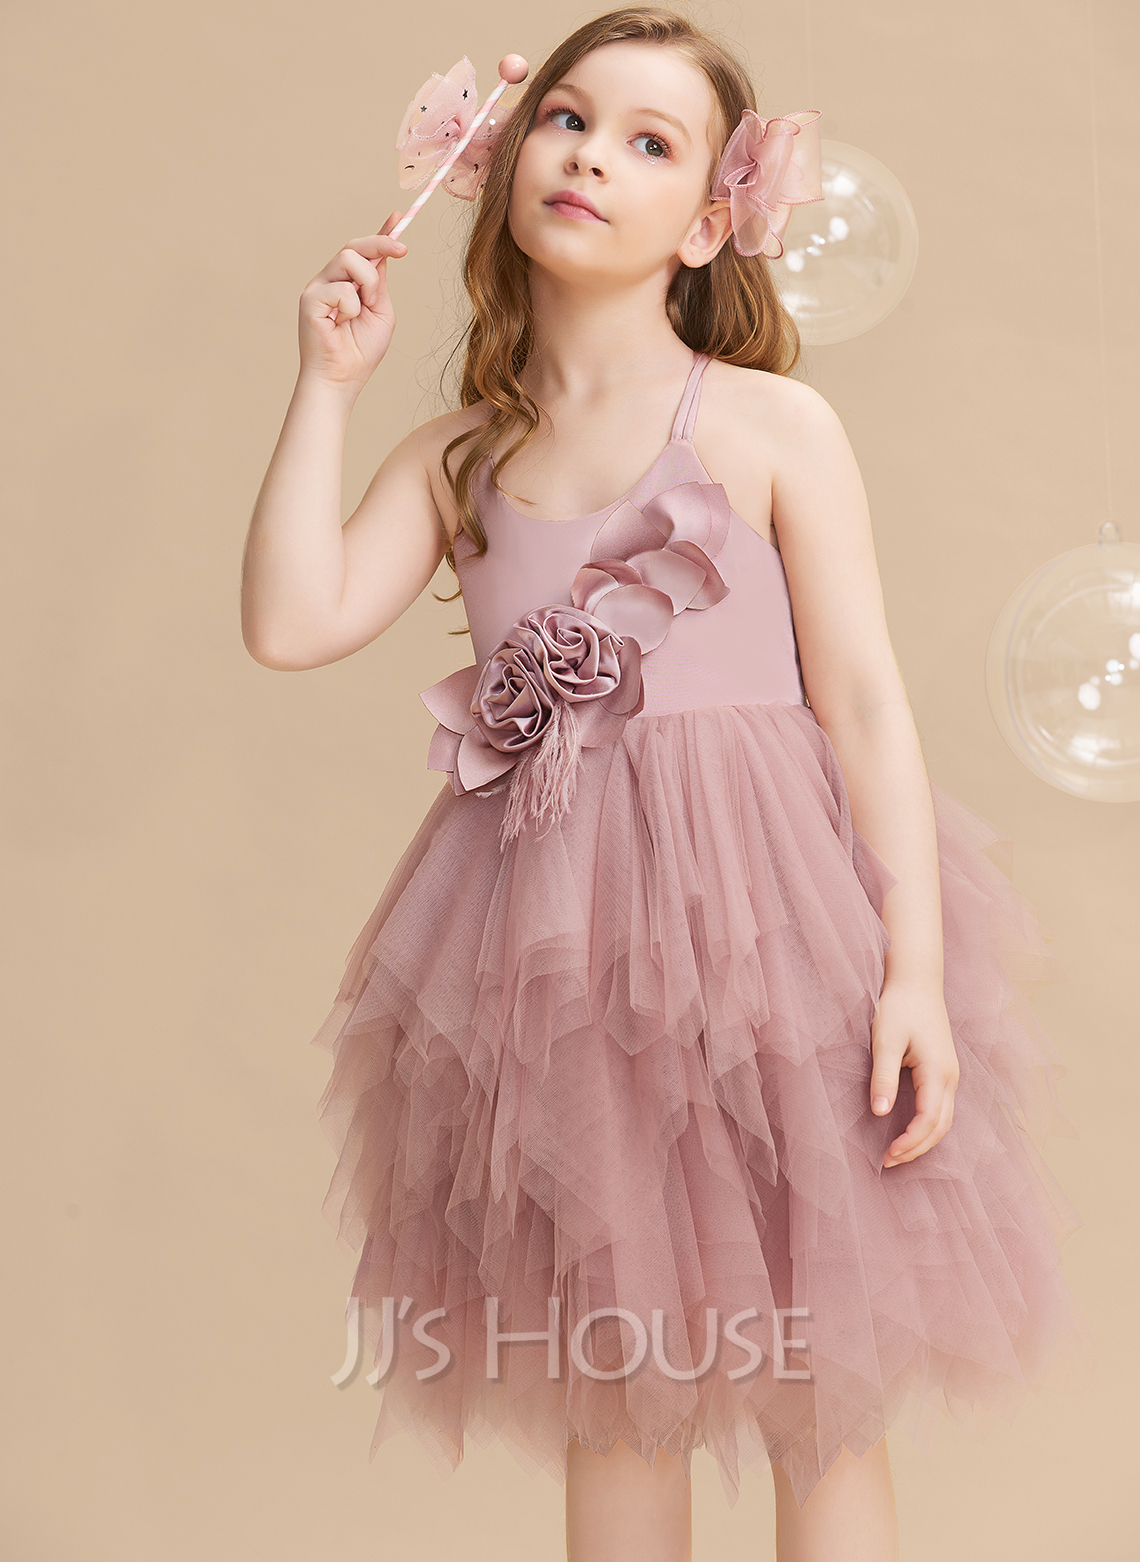 Ball-Gown/Princess Knee-length Flower Girl Dress - Sleeveless Scalloped Neck With Feather/Flower(s)